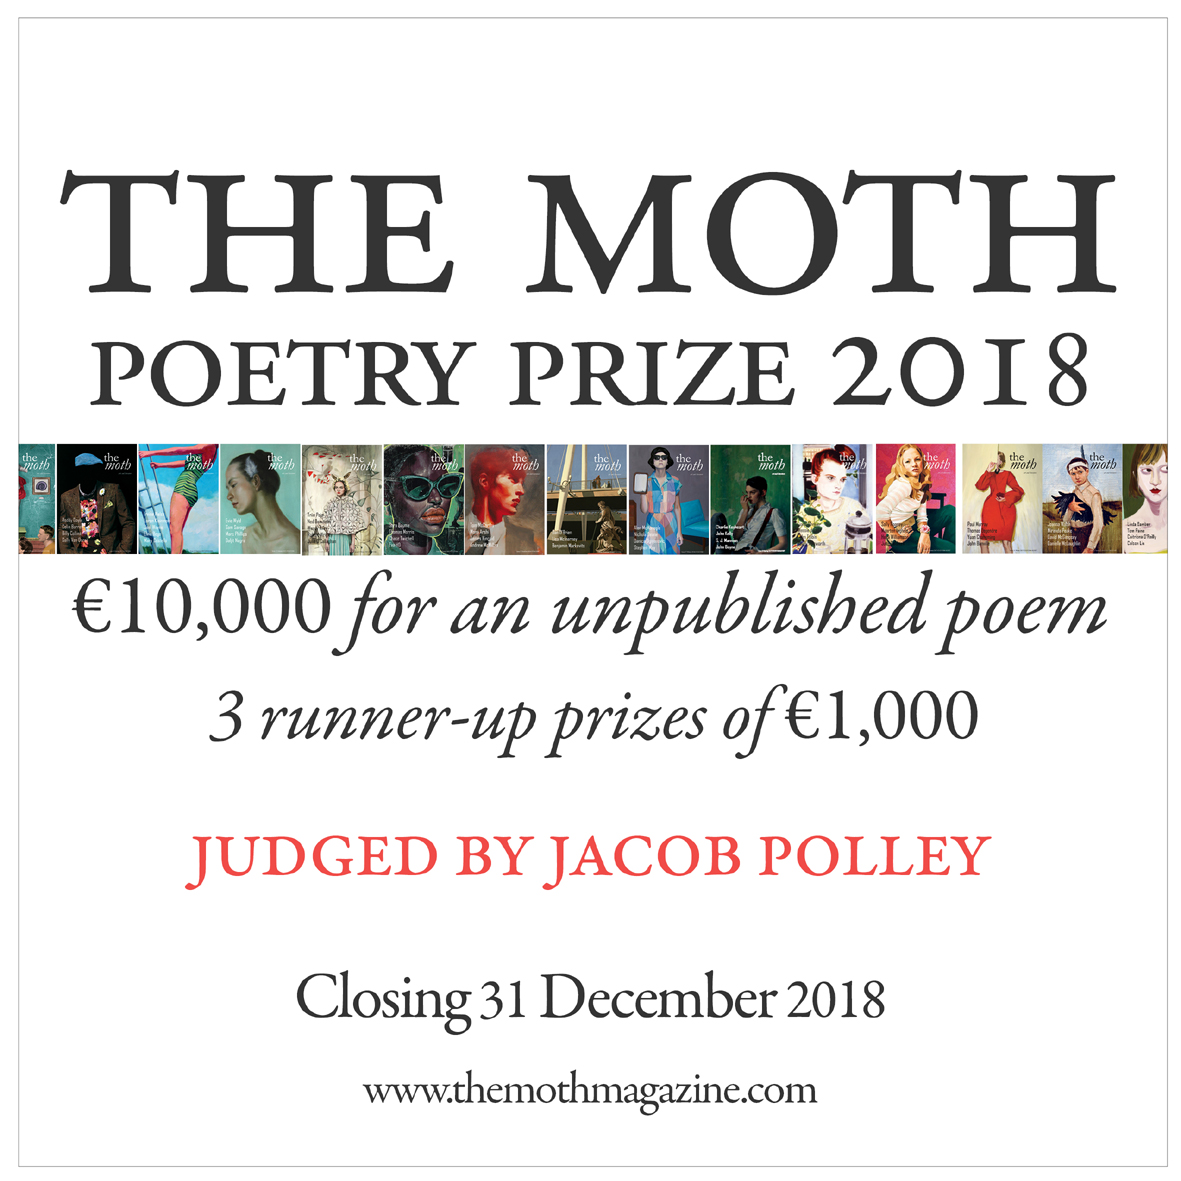 The Moth's €10,000 Poetry Prize: Entries Open Until 31 December